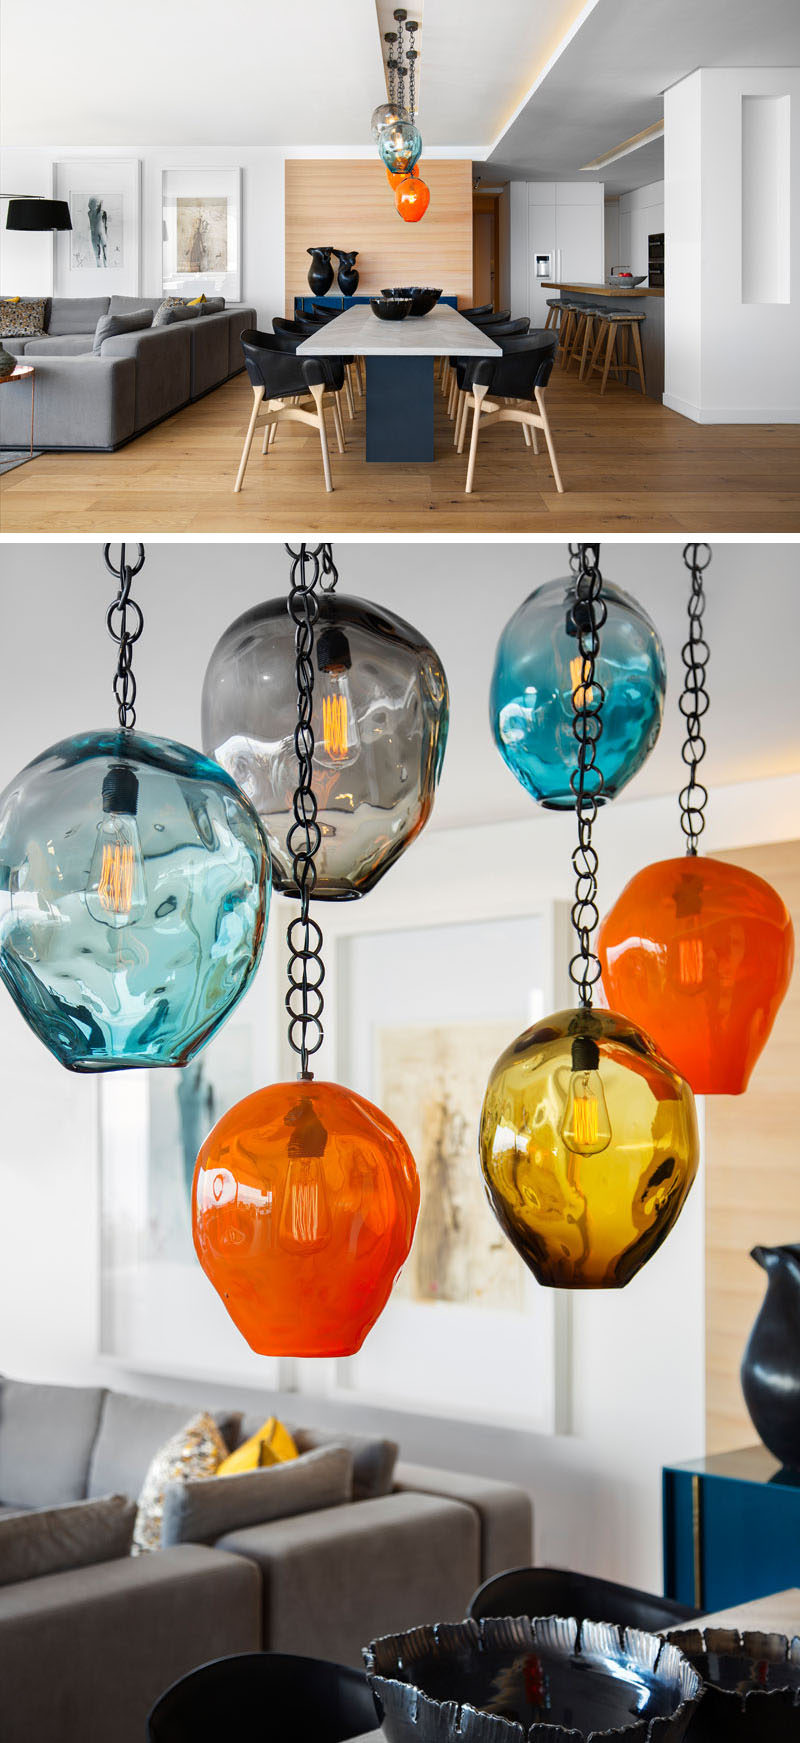 Hanging above this modern dining table are custom glass pendants by David Reade, that add vibrancy and colour to the room. #DiningRoom #GlassPendants #Lighting